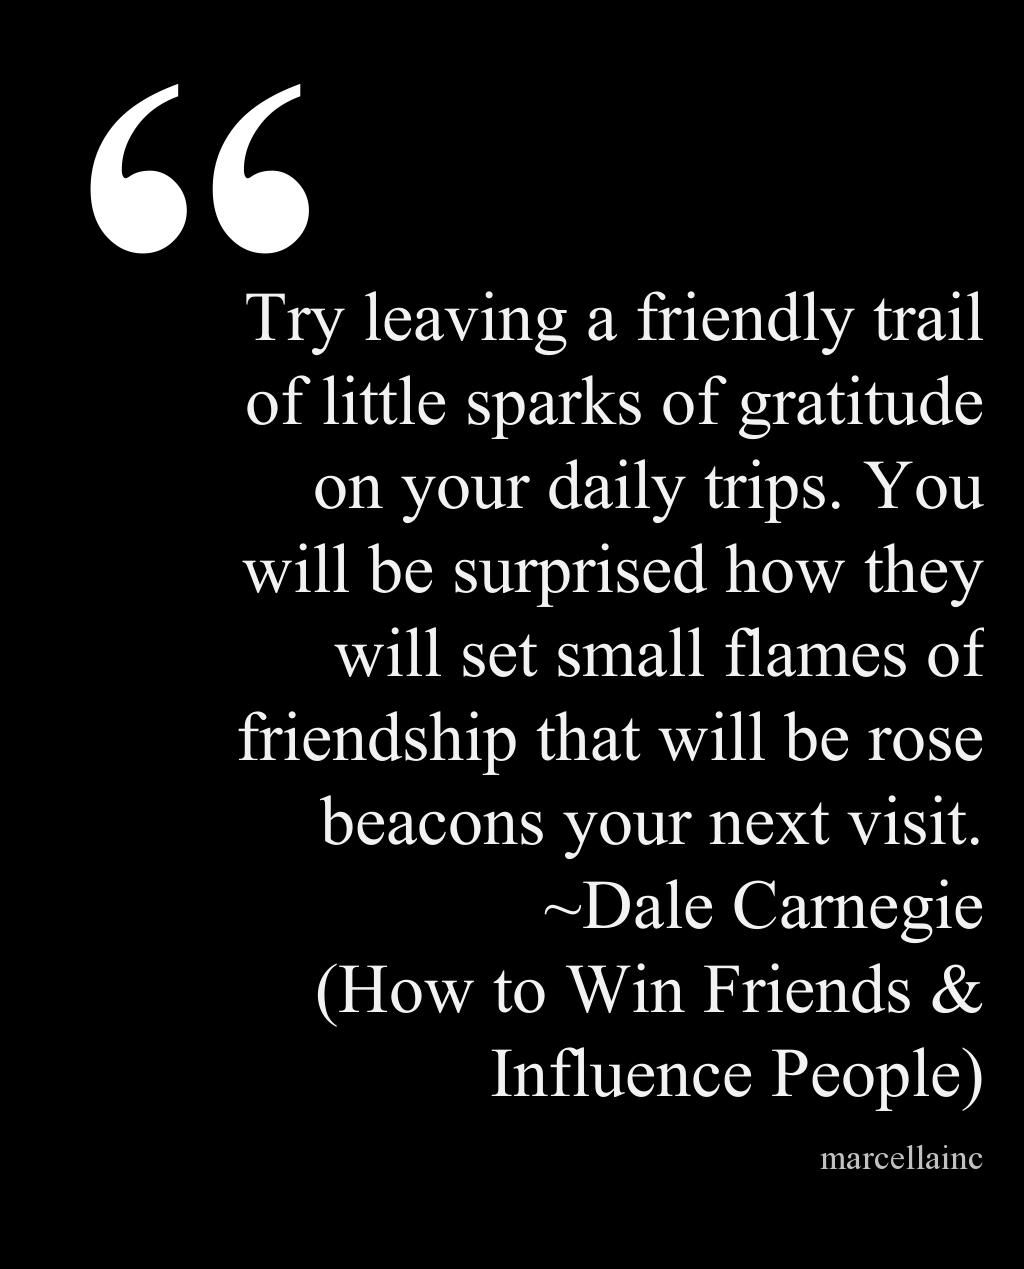 Show Appreciation Don't Criticize Dale Carnegie How To Win Friends And  Influence